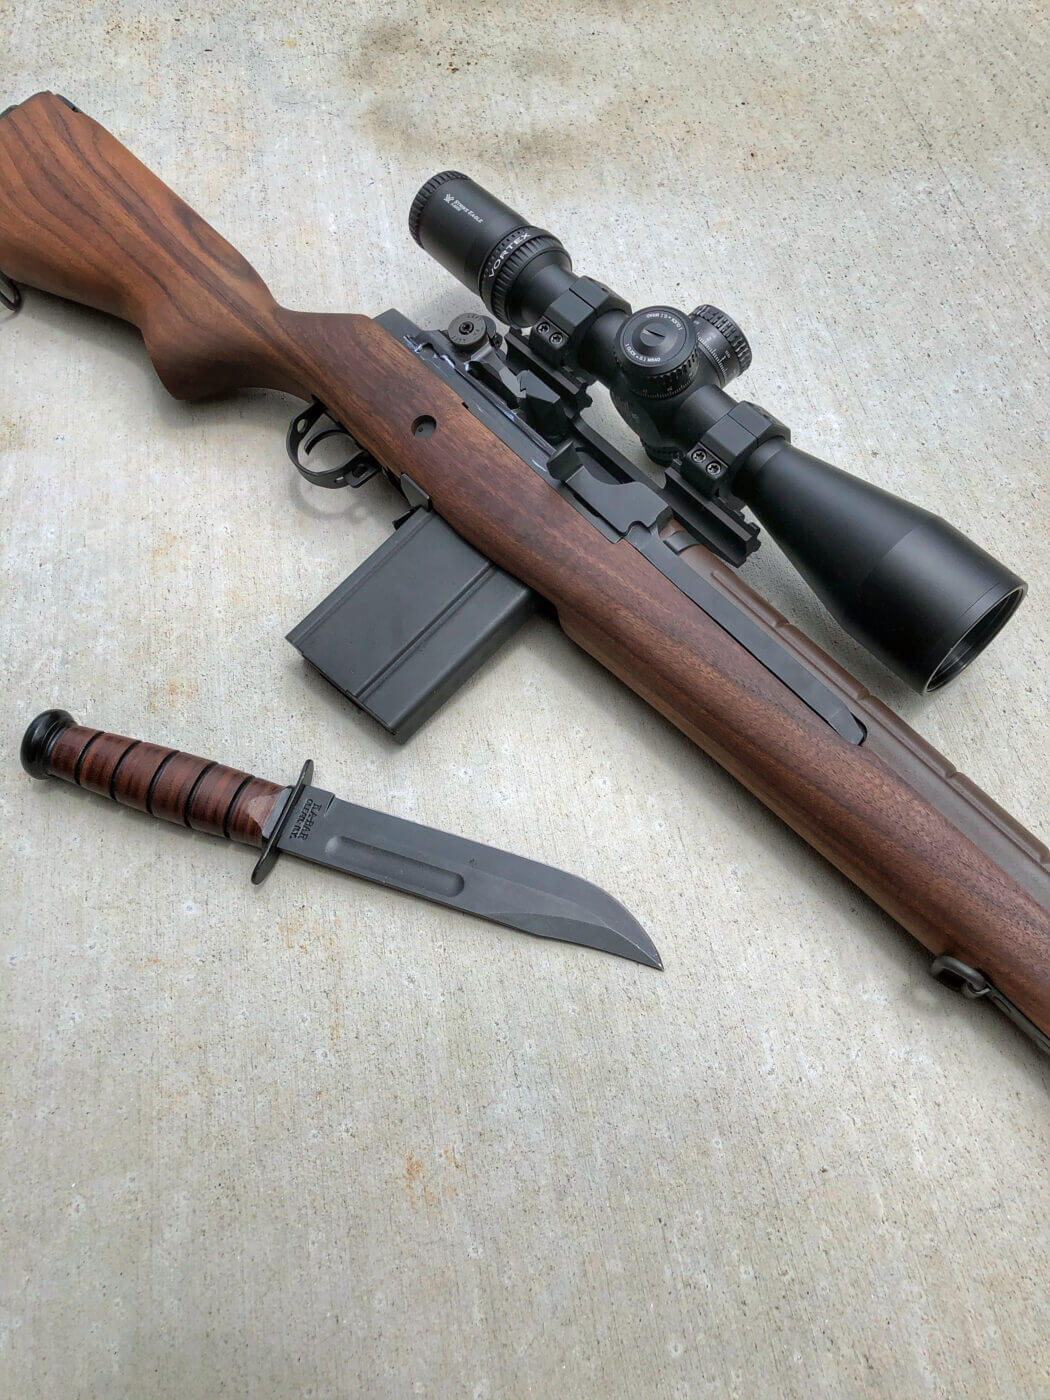 M1A Loaded with mounted scope